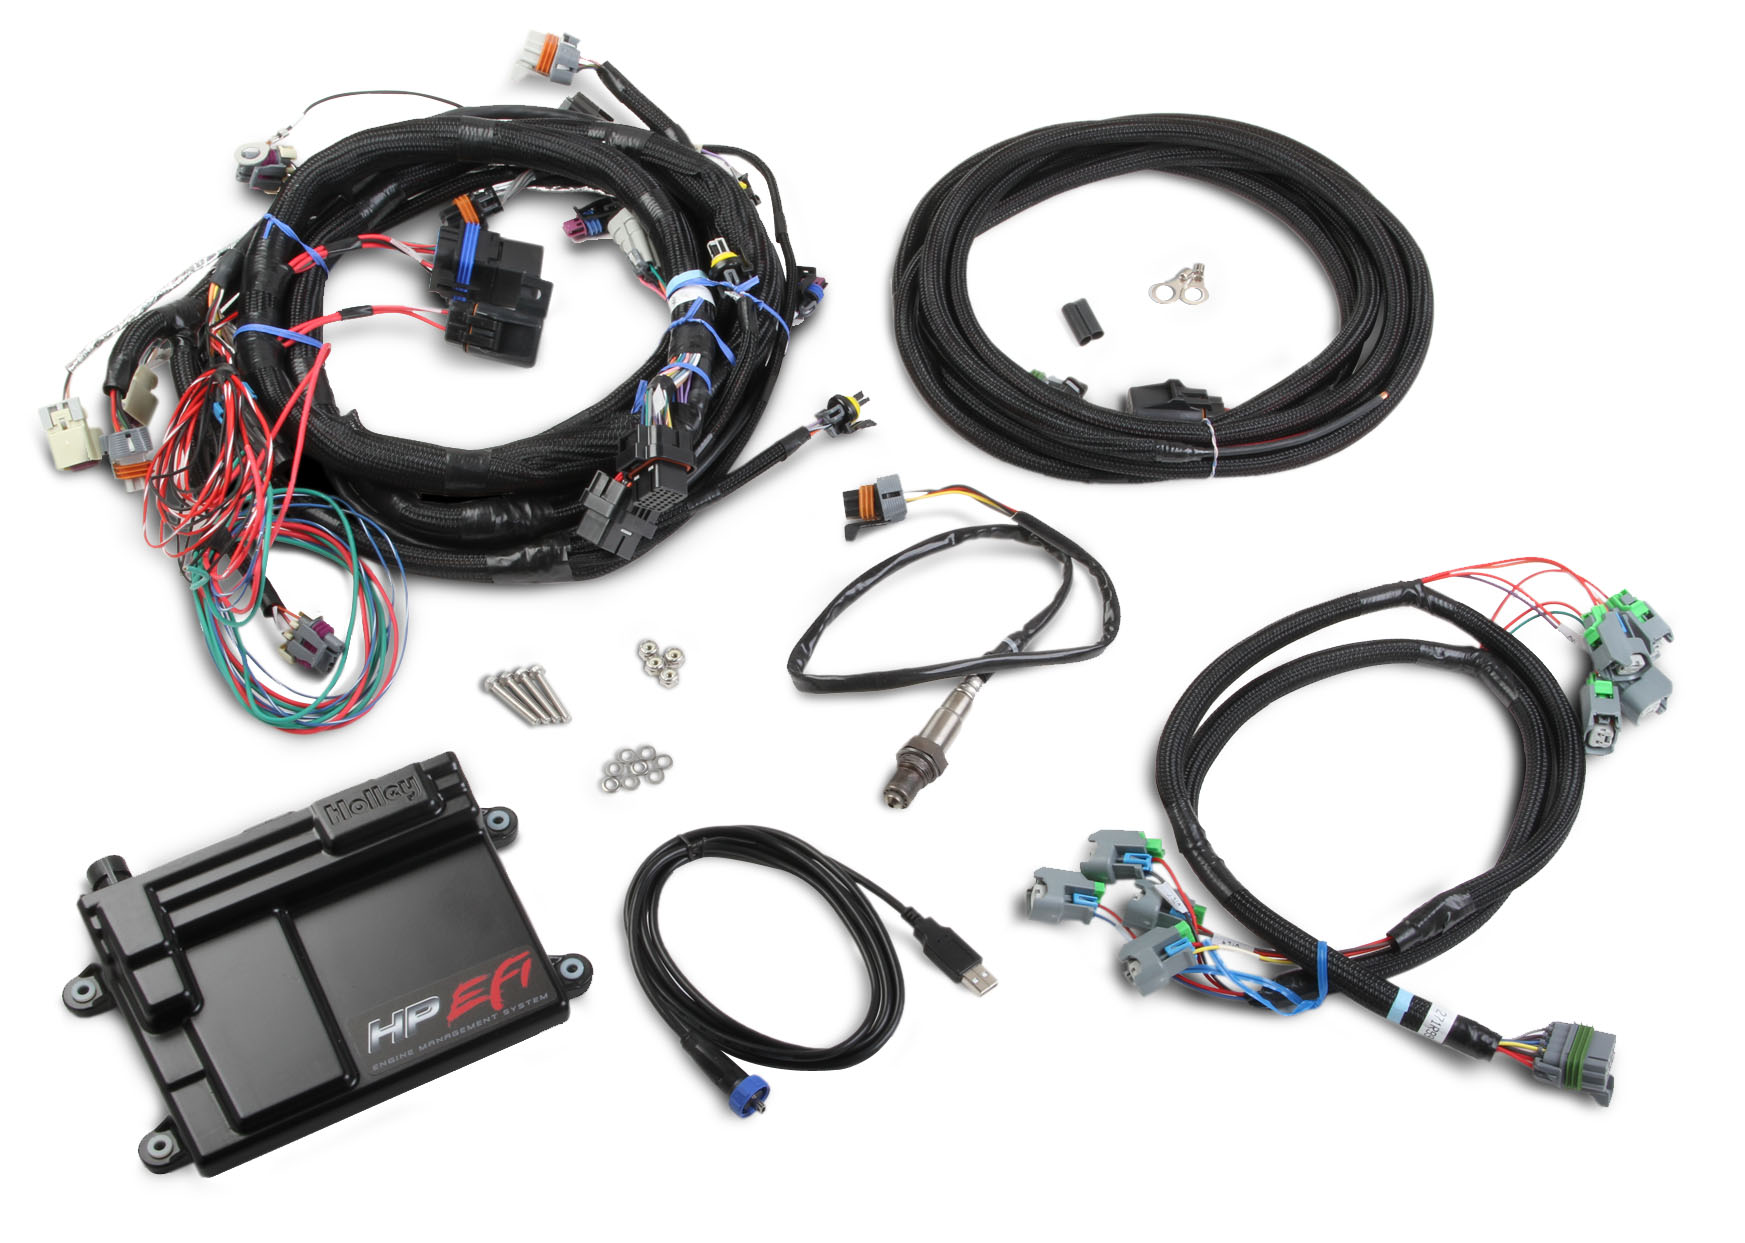 Standalone ls wiring harness with ecu sikky